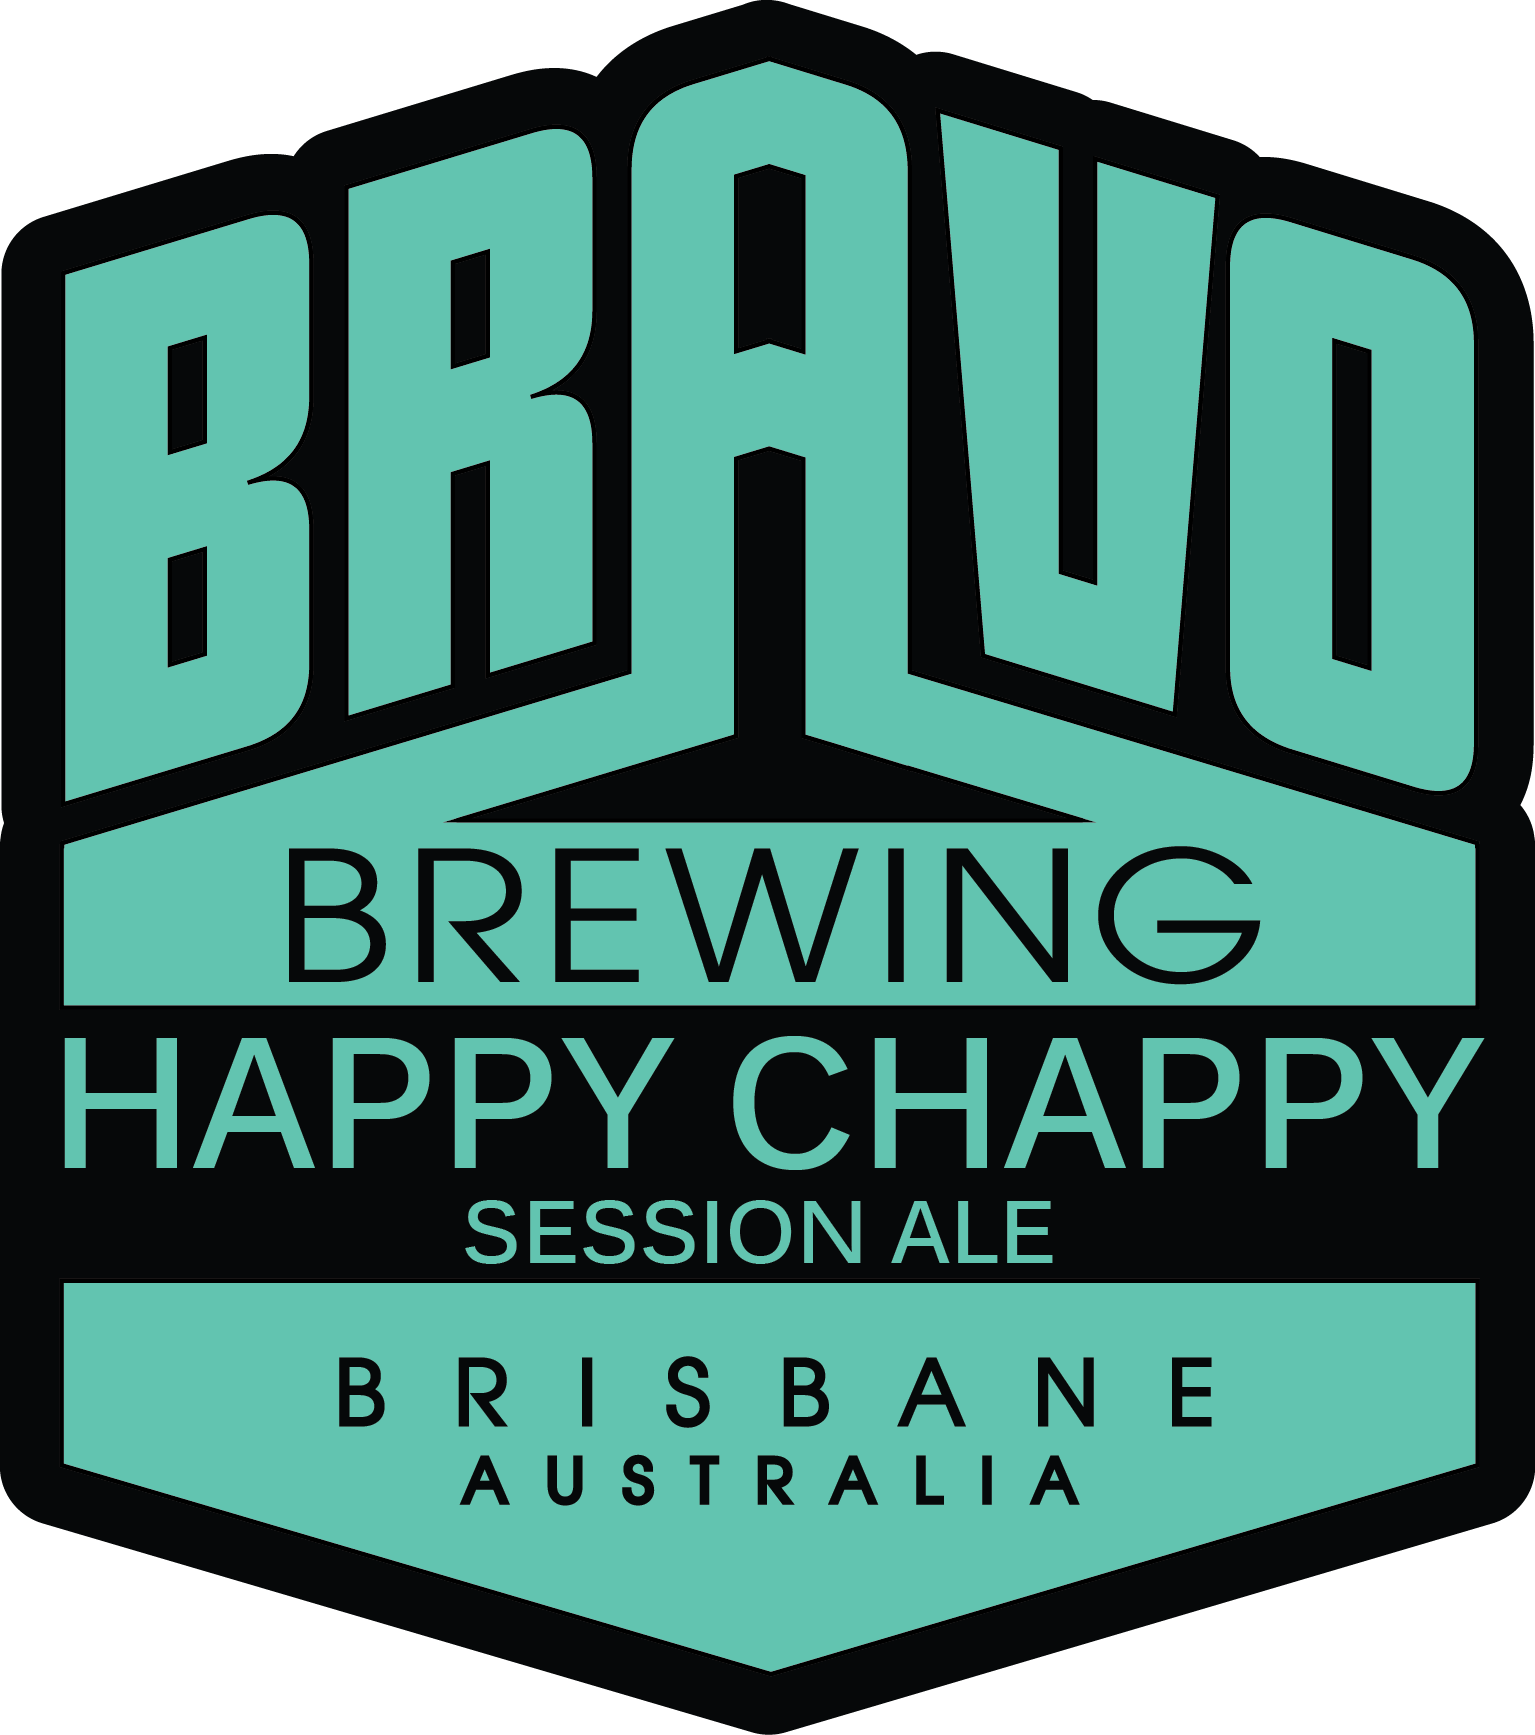 Happy Chappy Session Ale - THE STORY: The Petrie hotel during the 1970's was a very different place. After stopping in for a beer on the way home from a hunting trip, a couple of larrikins, Gordon Chappell and Dickie Lane, decided the public bar needed some entertainment. They retrieved a small wild boar they'd brought back with them and let it loose in the pub. As it ran wild and madness ensued, all that could be heard over the ruckus was Gordon's laugh and the nickname Happy Chappy was born. Here's to beers, laughs, larrikins and our grandfather Gord.THE FLAVOUR PROFILE: This deep golden session ale is a real crowd pleaser. A trio of hops lend balanced pine, citrus and stonefruit flavours, and from the malt, subtle notes of bread and toast. This beer is for those looking for a standout easy-drinking American-style session ale that doesn't compromise on flavour.